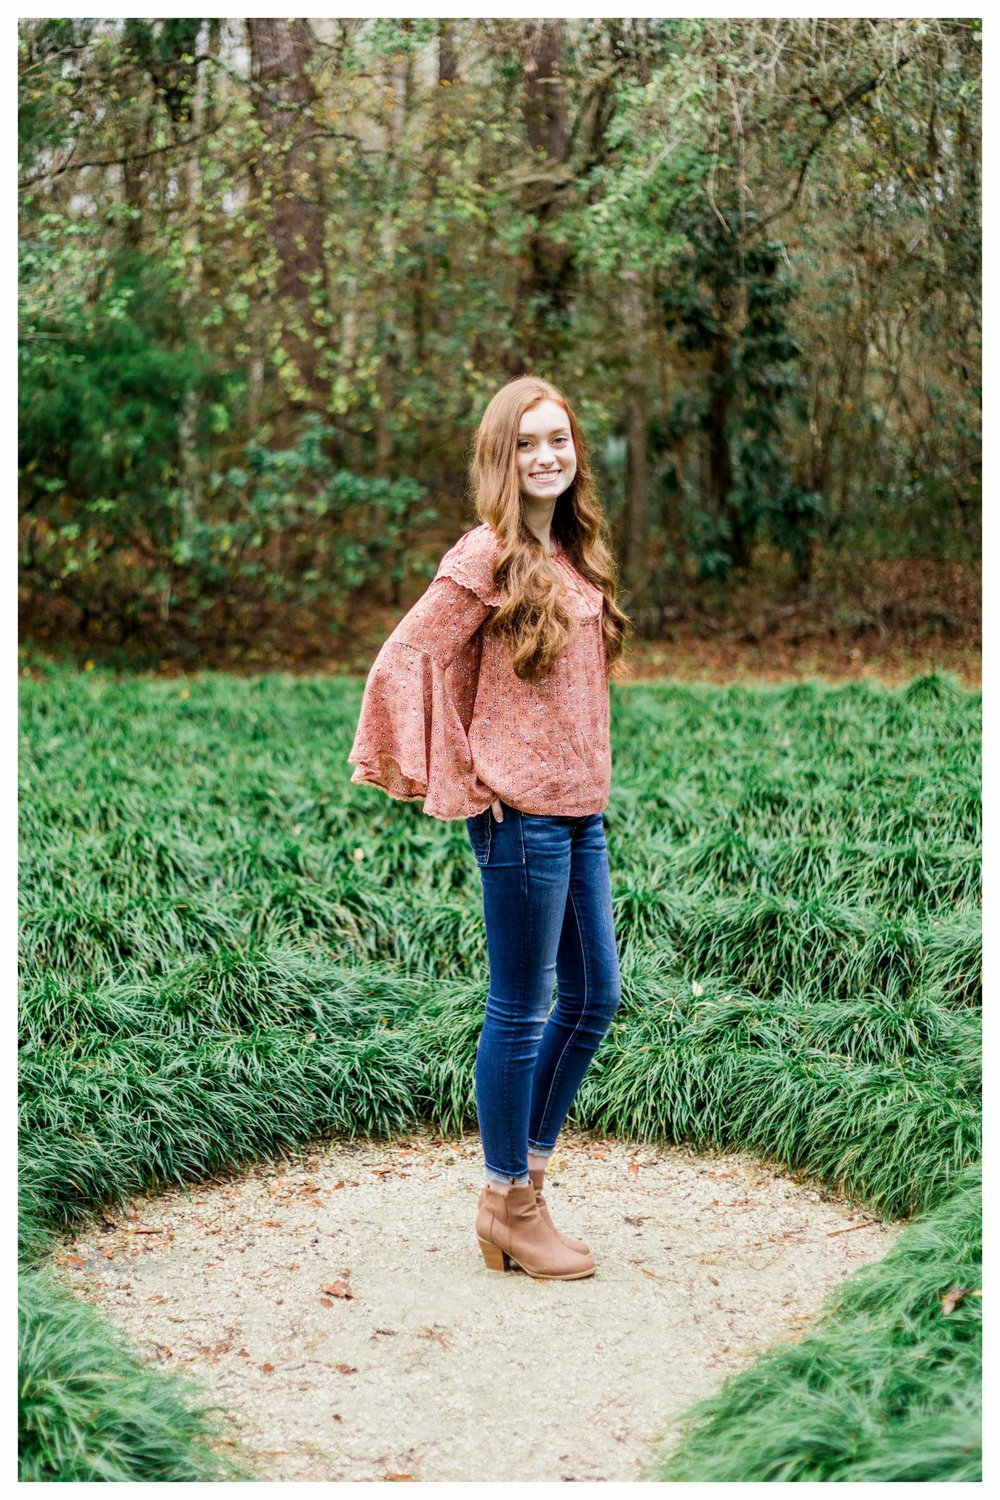 lillie_senior_2018_blog-4.jpg